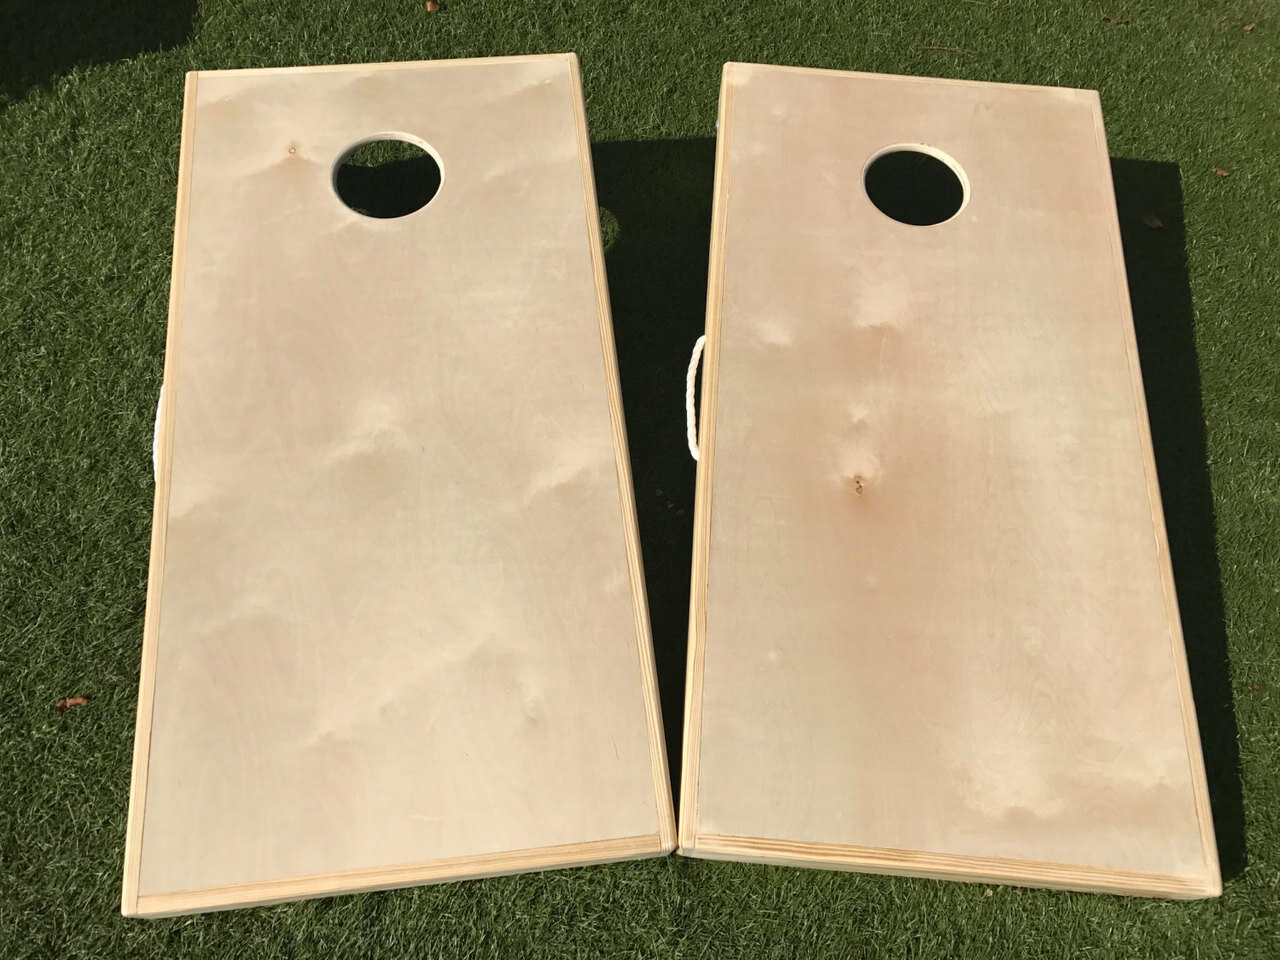 Simply Sports 4 Corn Hole /& Bean Bag Toss Set with Solid Pine Wood Frame and Built in Carry Handle